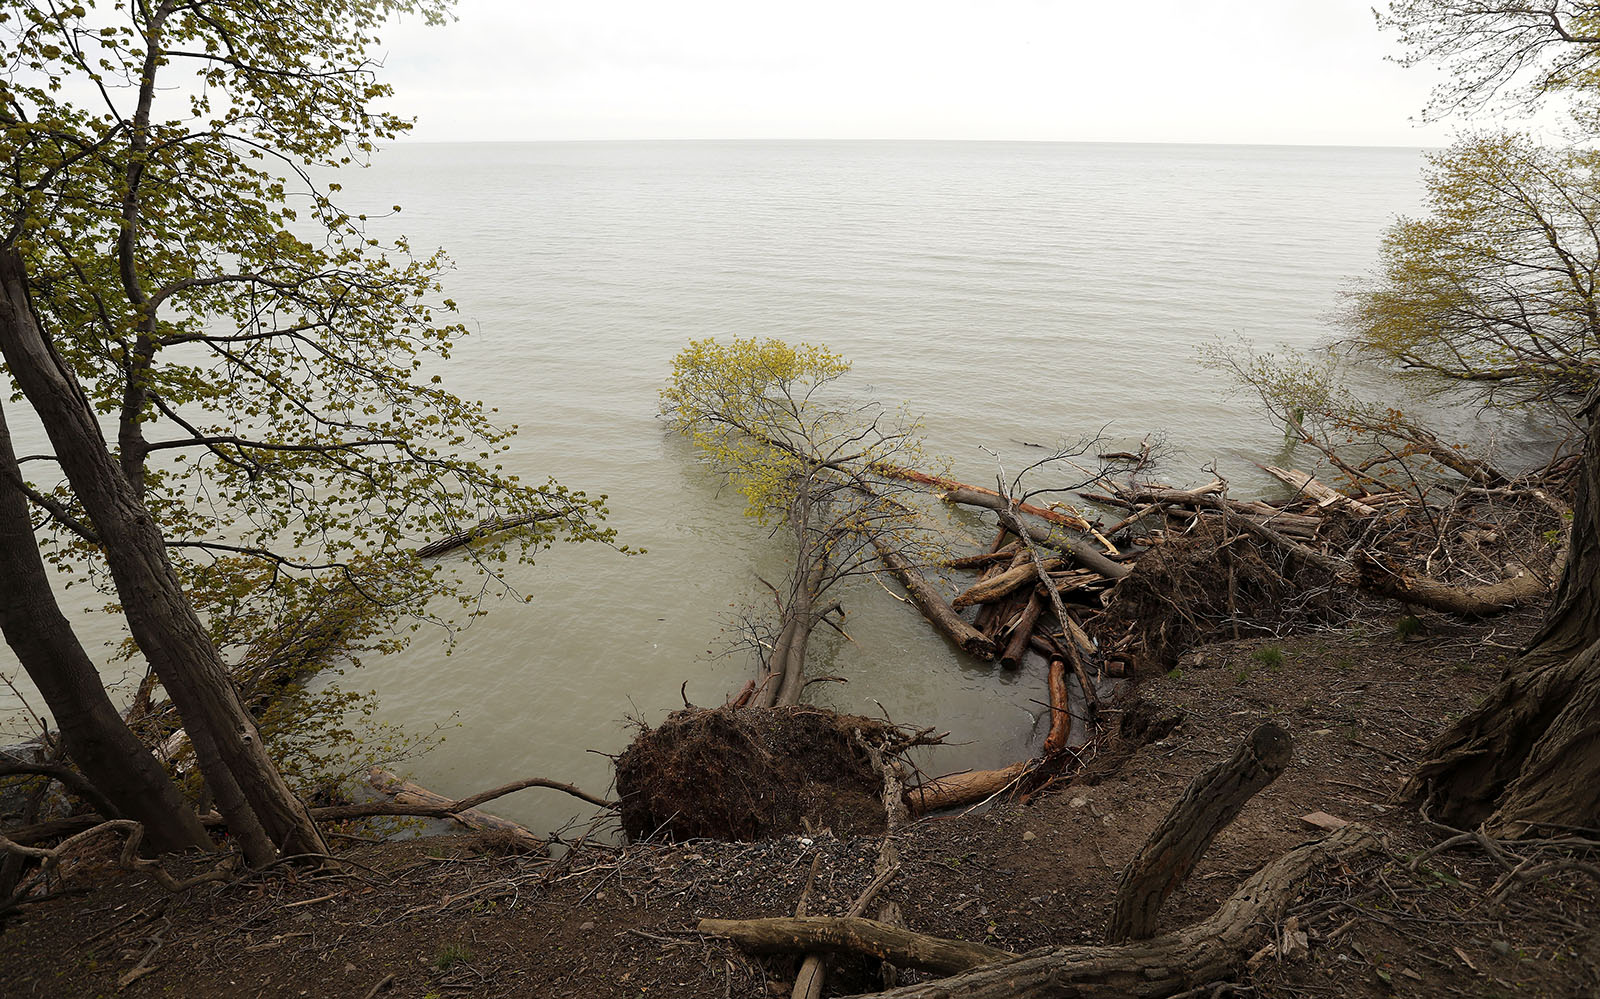 Trump approves disaster aid for some counties hit by Lake Ontario flooding